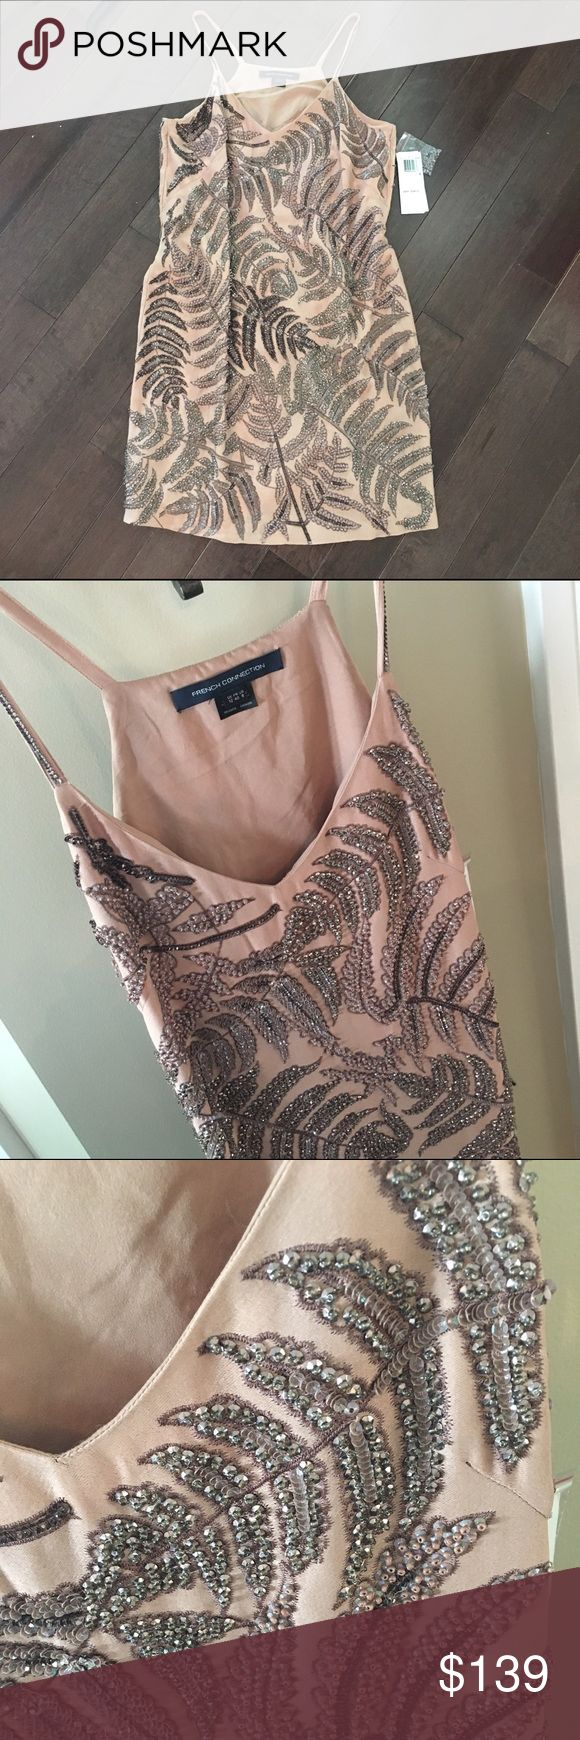 FRENCH CONNECTION Nude Sequin Dress Sz. 8 NWT I contemplated many times whether not I should list this beautiful dress, but, ultimately, I decided to list it, as I don't think I will ever wear it. Still has tags attached, $398 in stores.  This dress is a head-turner for sure! It has been hanging in the closet, so I do not think any of the sequins are missing.  If you do you lose a sequin, or find that there is a sequin or two missing, there is a bag of sequins given from French Connection…